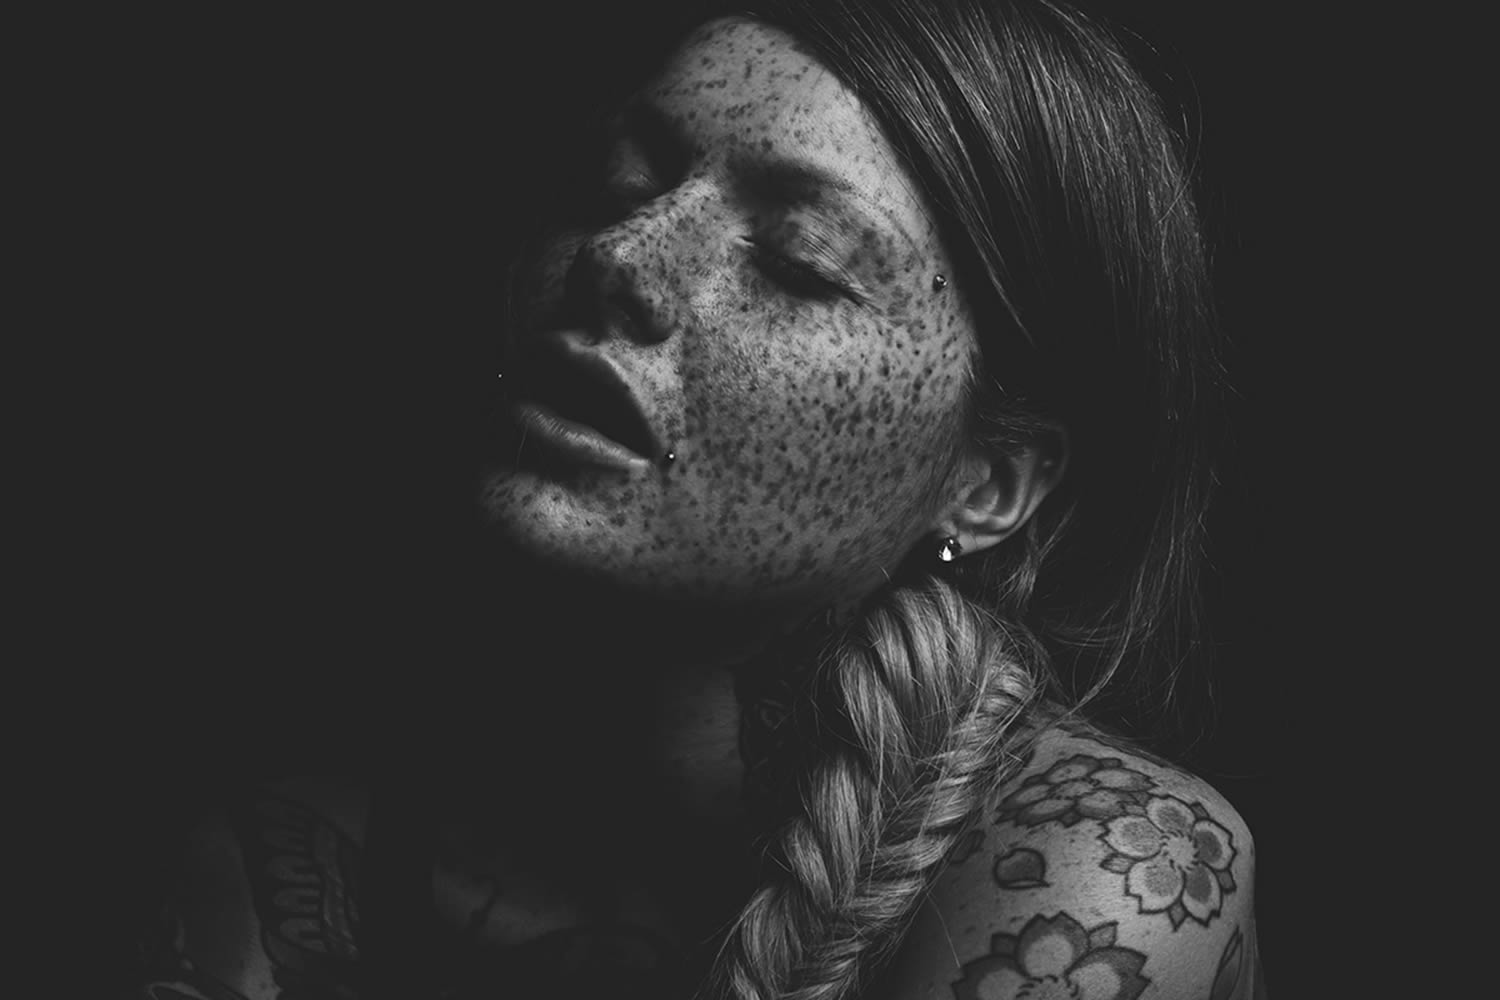 freckled face girl, photography